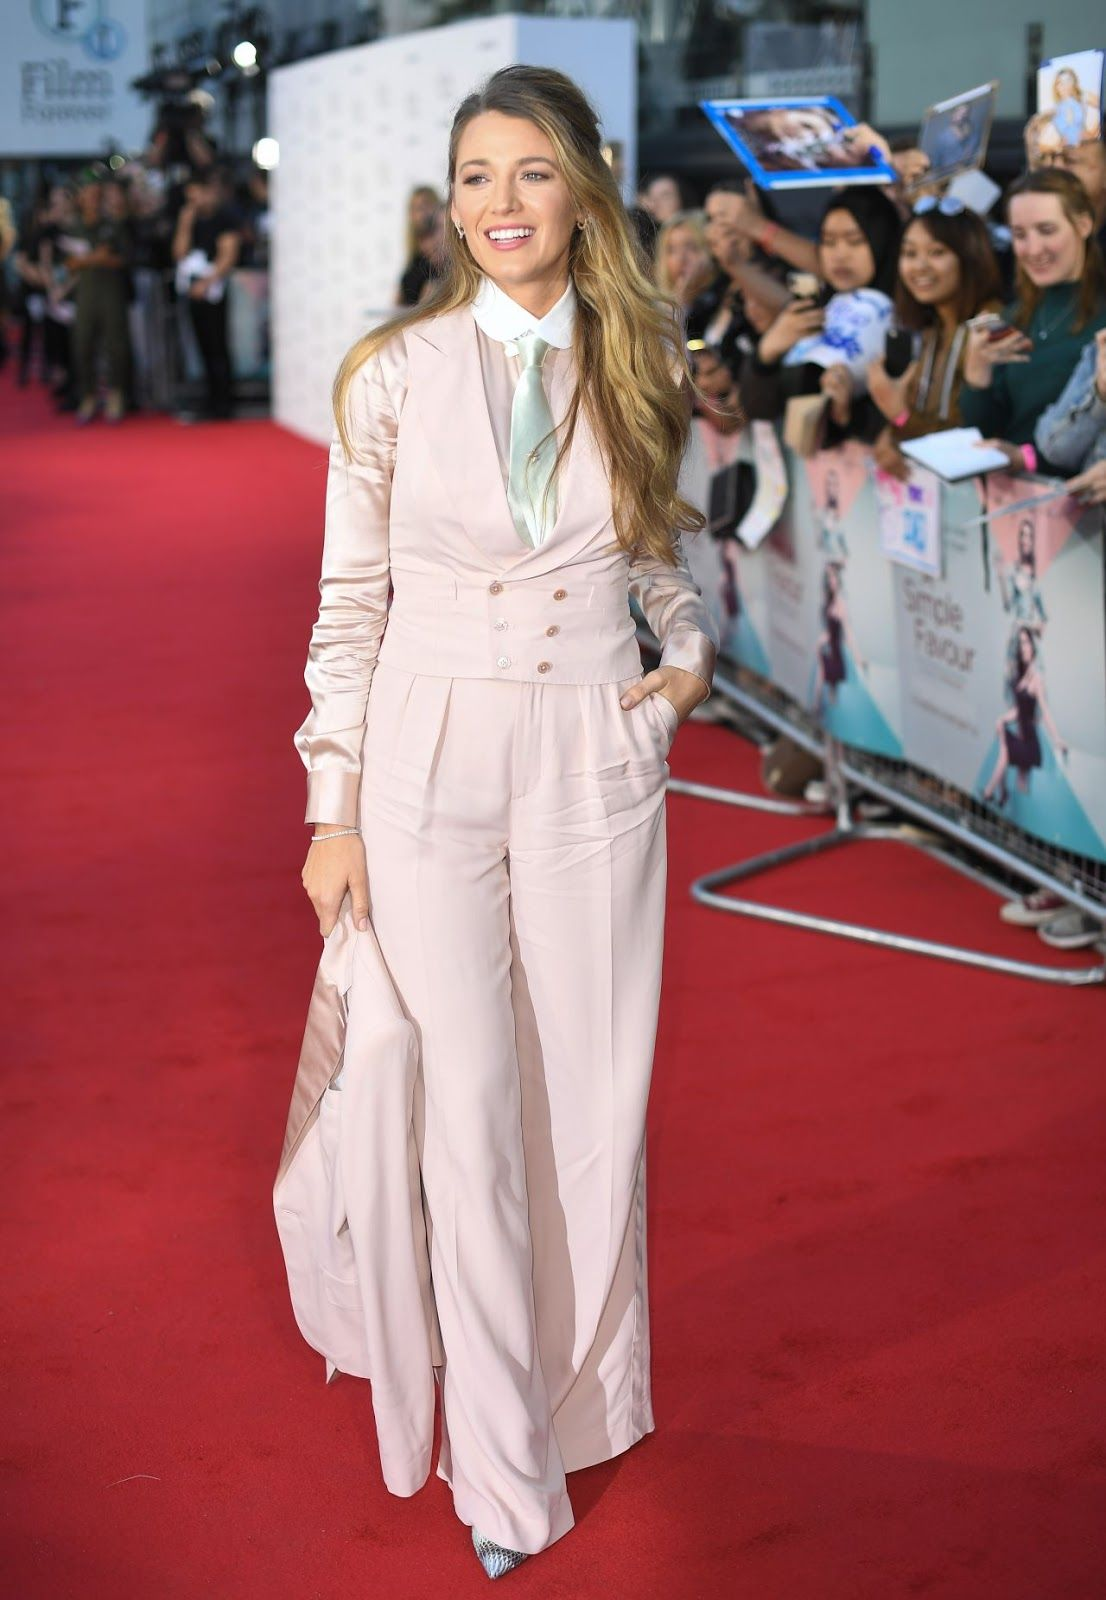 f4d80ca06c98 Blake Lively A Simple Favour Premiere in London